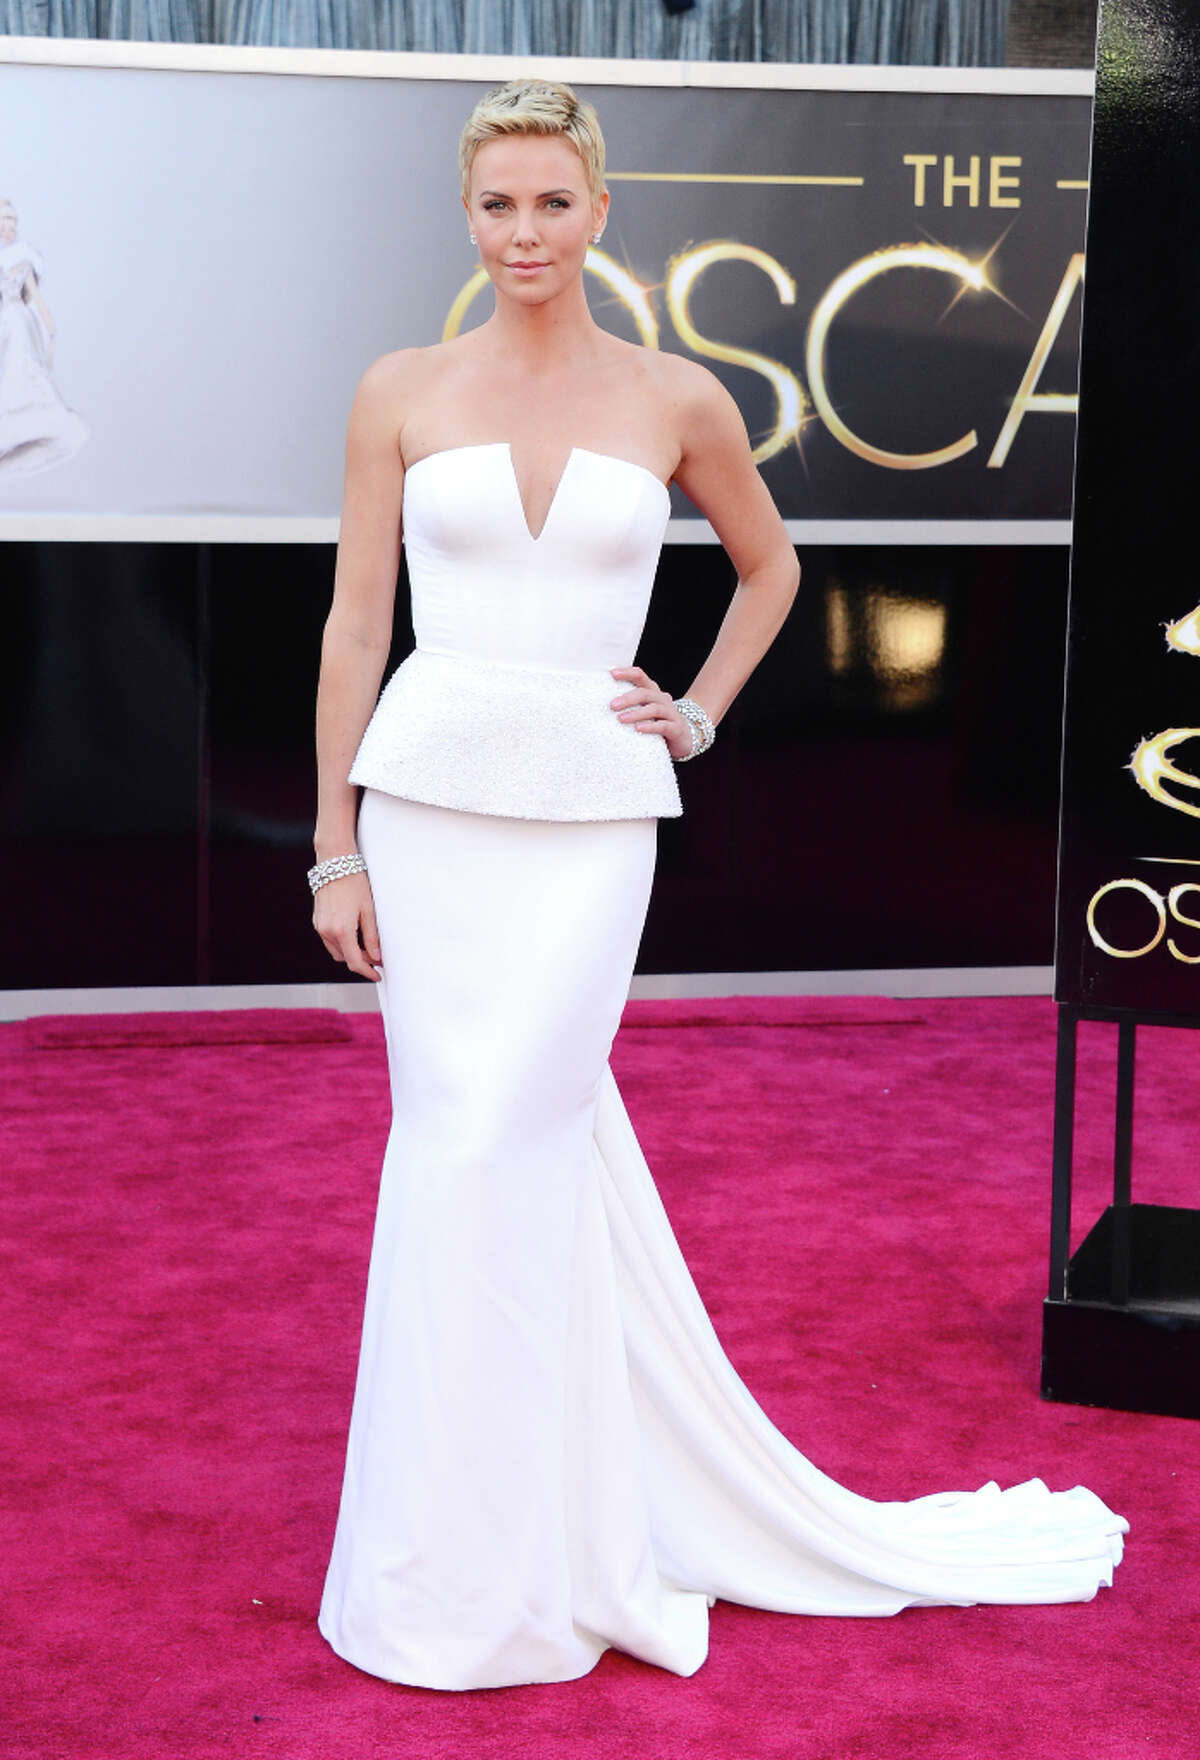 10. CHRISTIAN DIOR: $100,000 Charlize Theron wore this couture Dior gown for the 2013 Oscars. With the jewelry included, the entire look reached a total of more than $4 million, according to Getty Images.